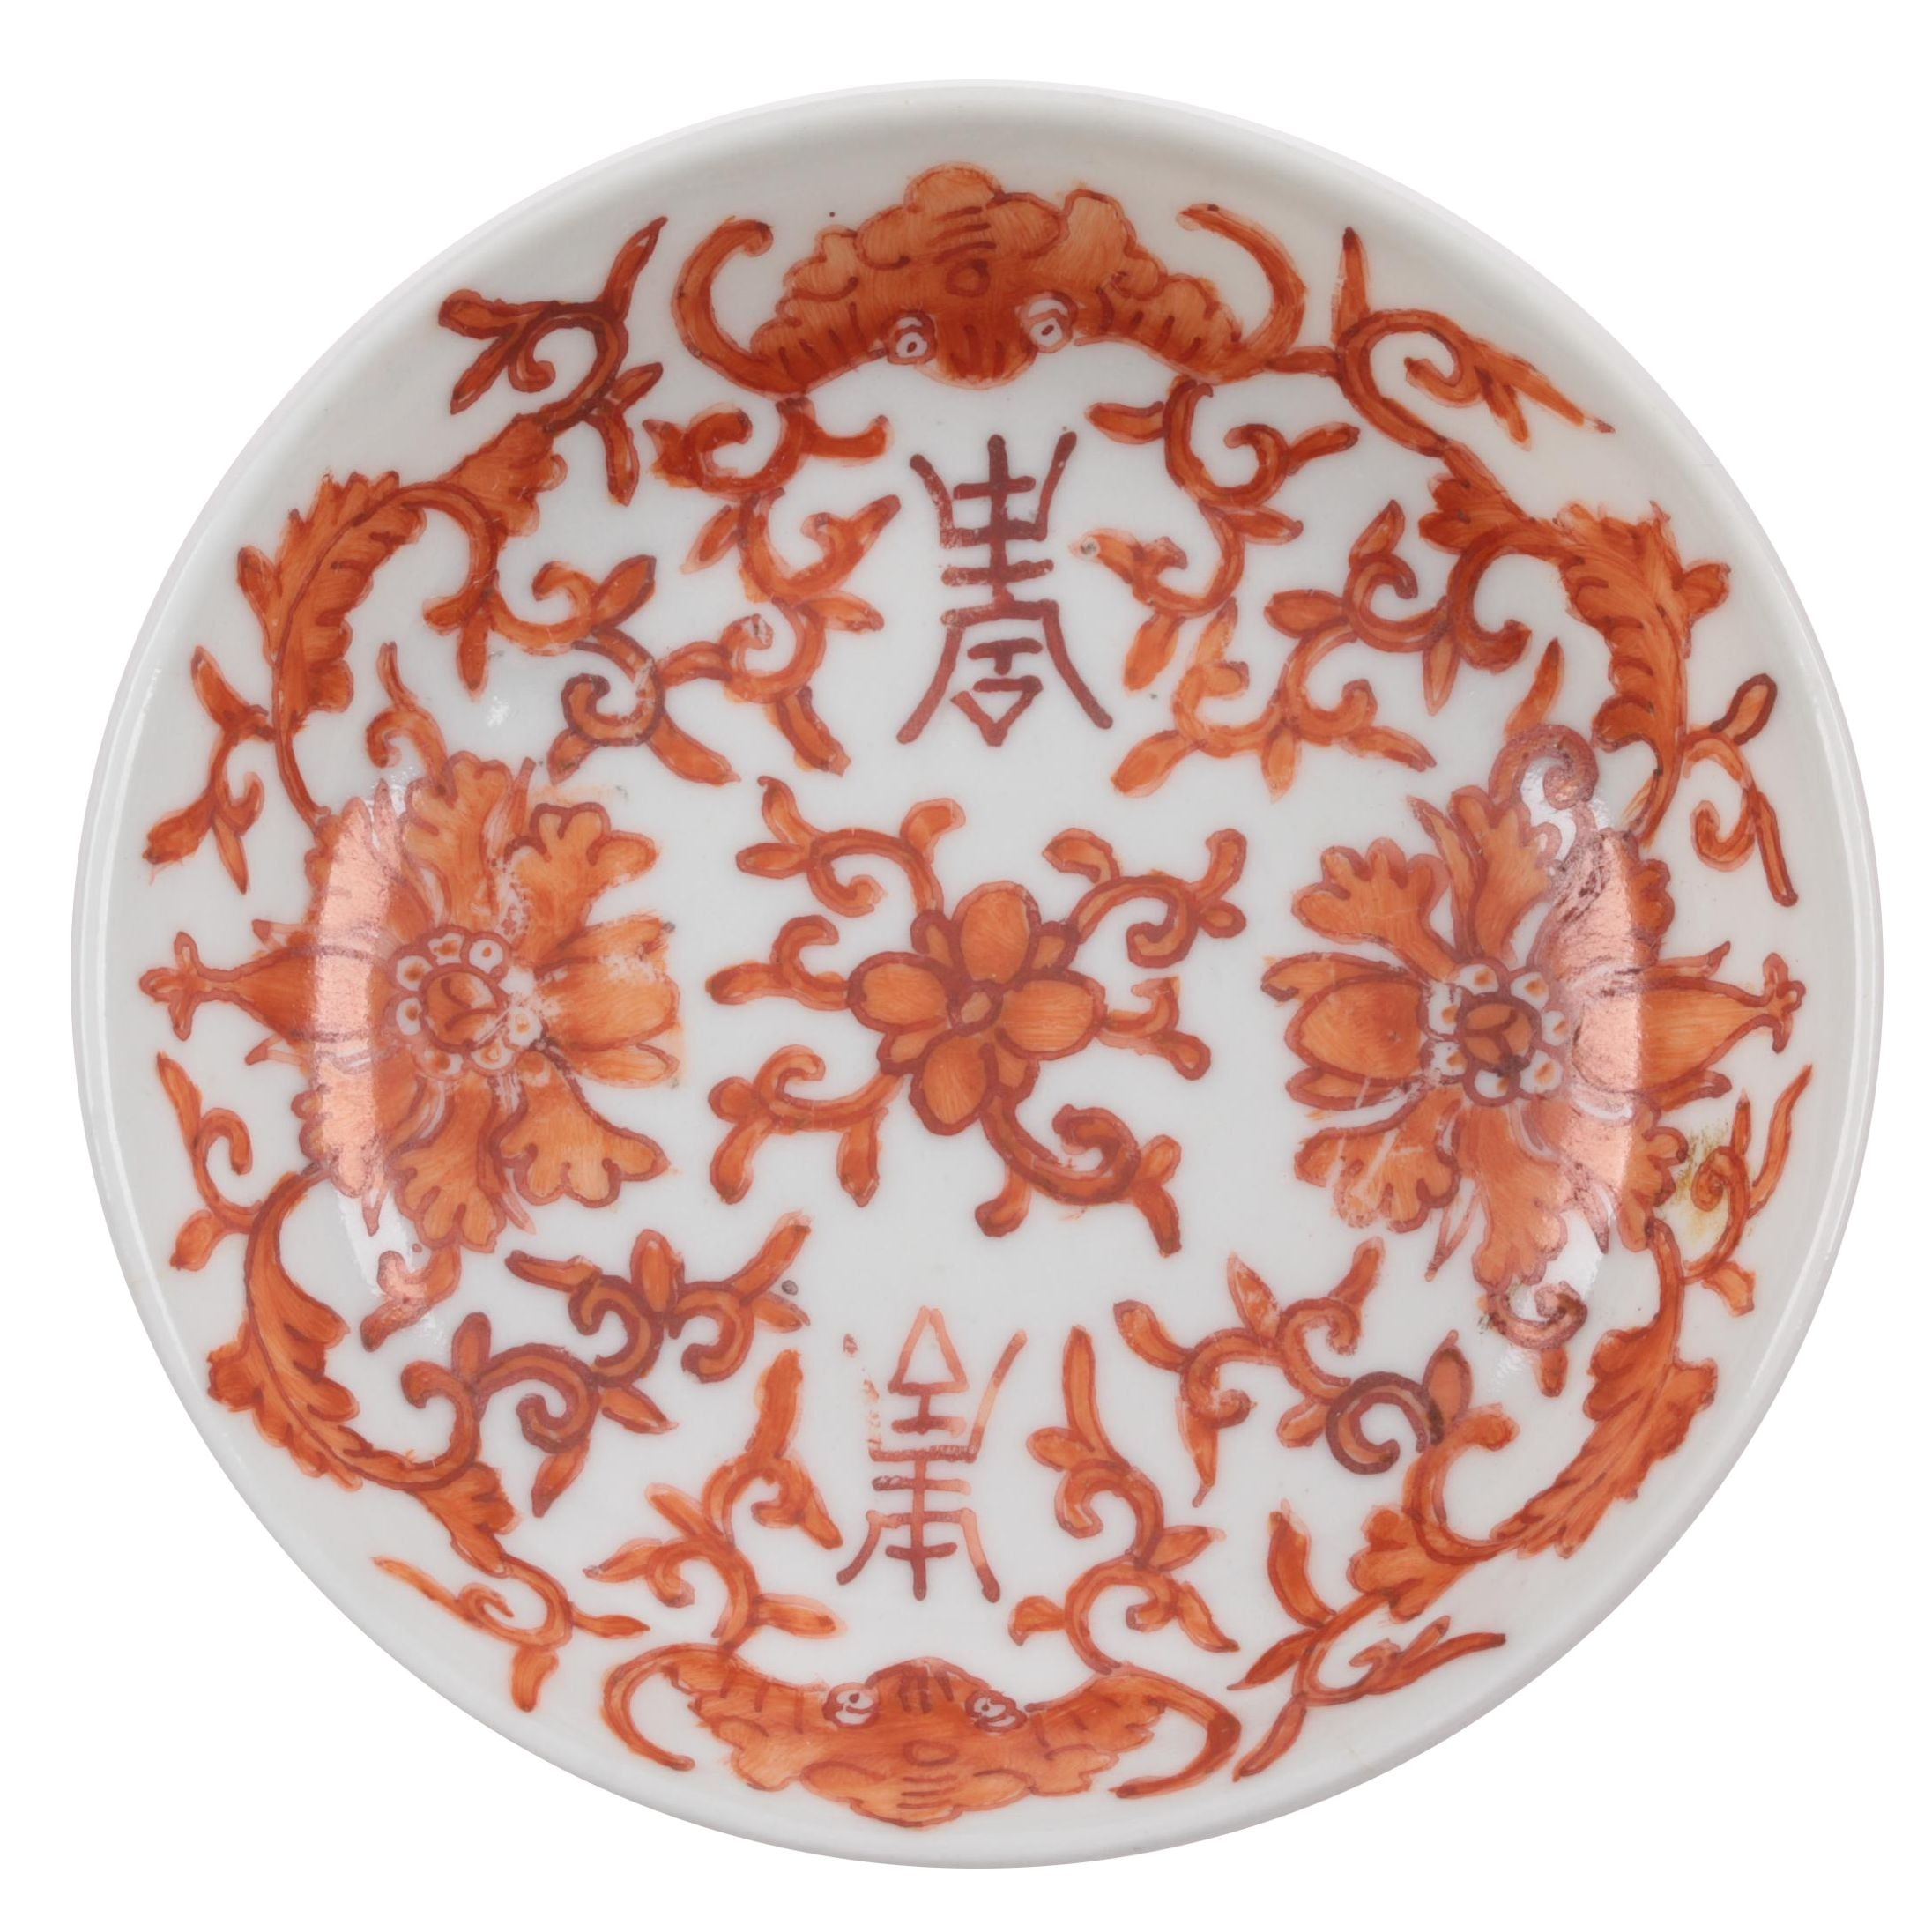 Chinese Porcelain Saucer in Red Overglaze Decoration